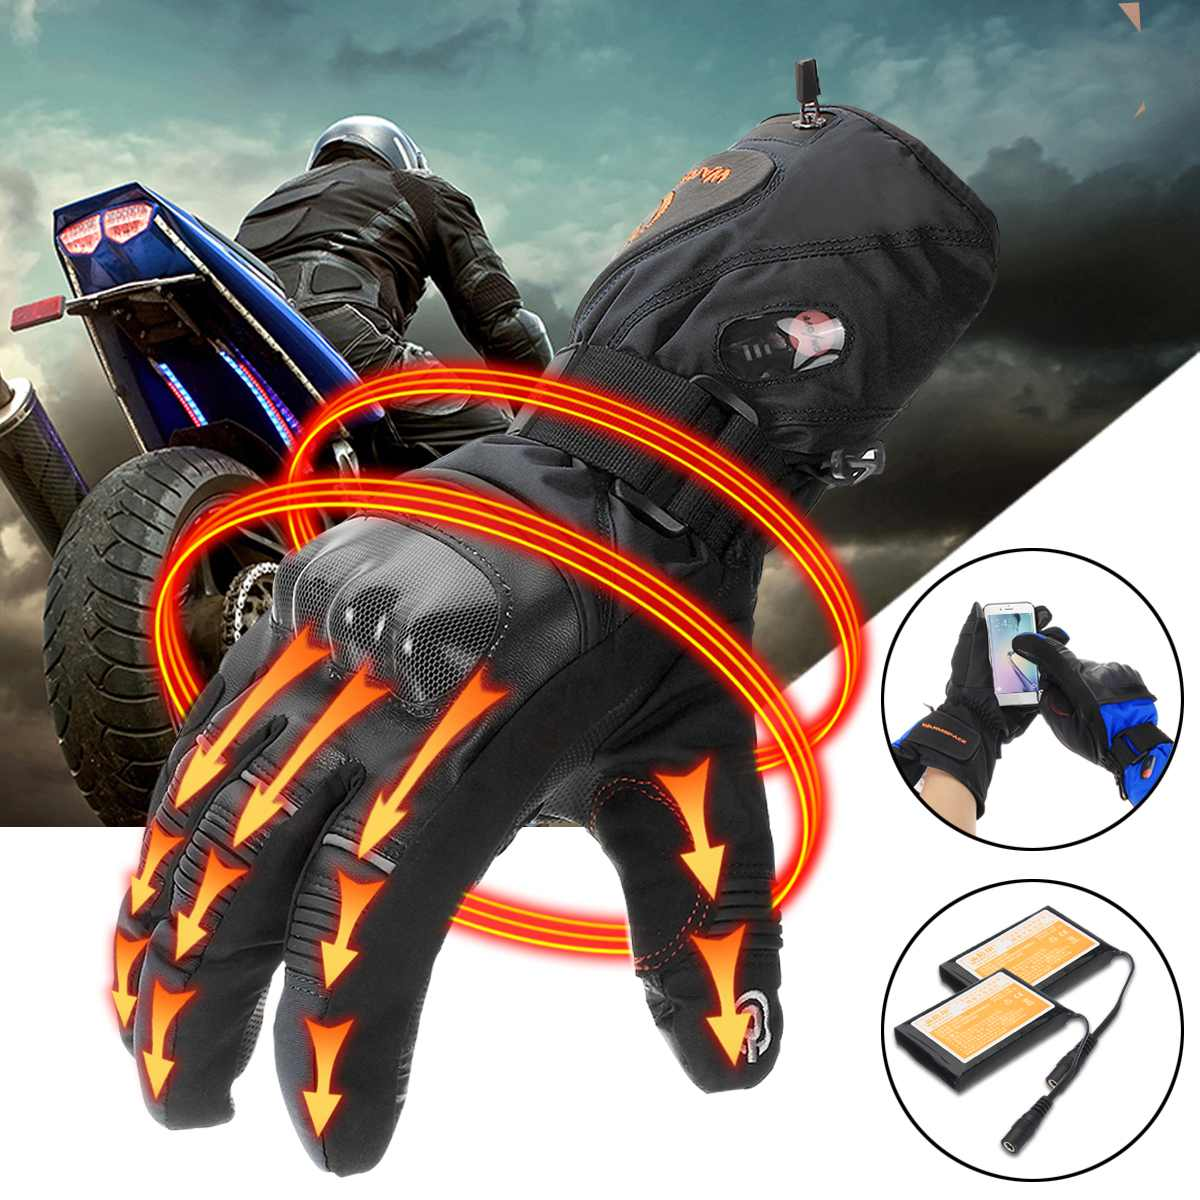 5600mah 7.4v Rechargeable Electric Gloves Heated Li Battery For Motorcycle Riding Snowboarding Skiing Sufficient Supply